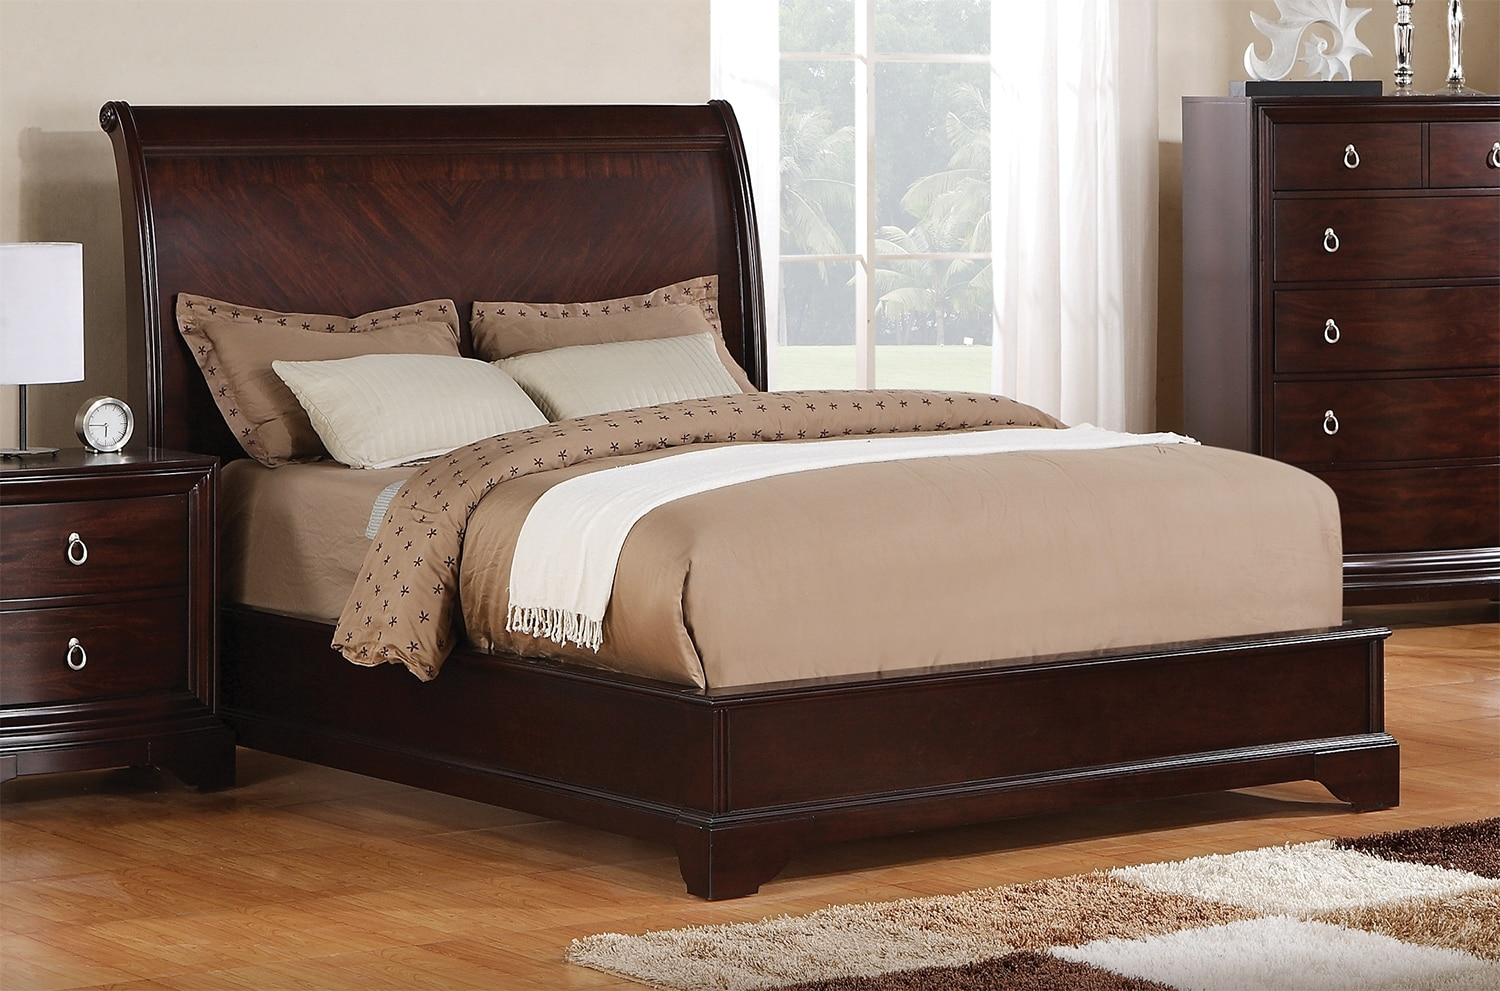 King Size Beds Leon S King Size Beds